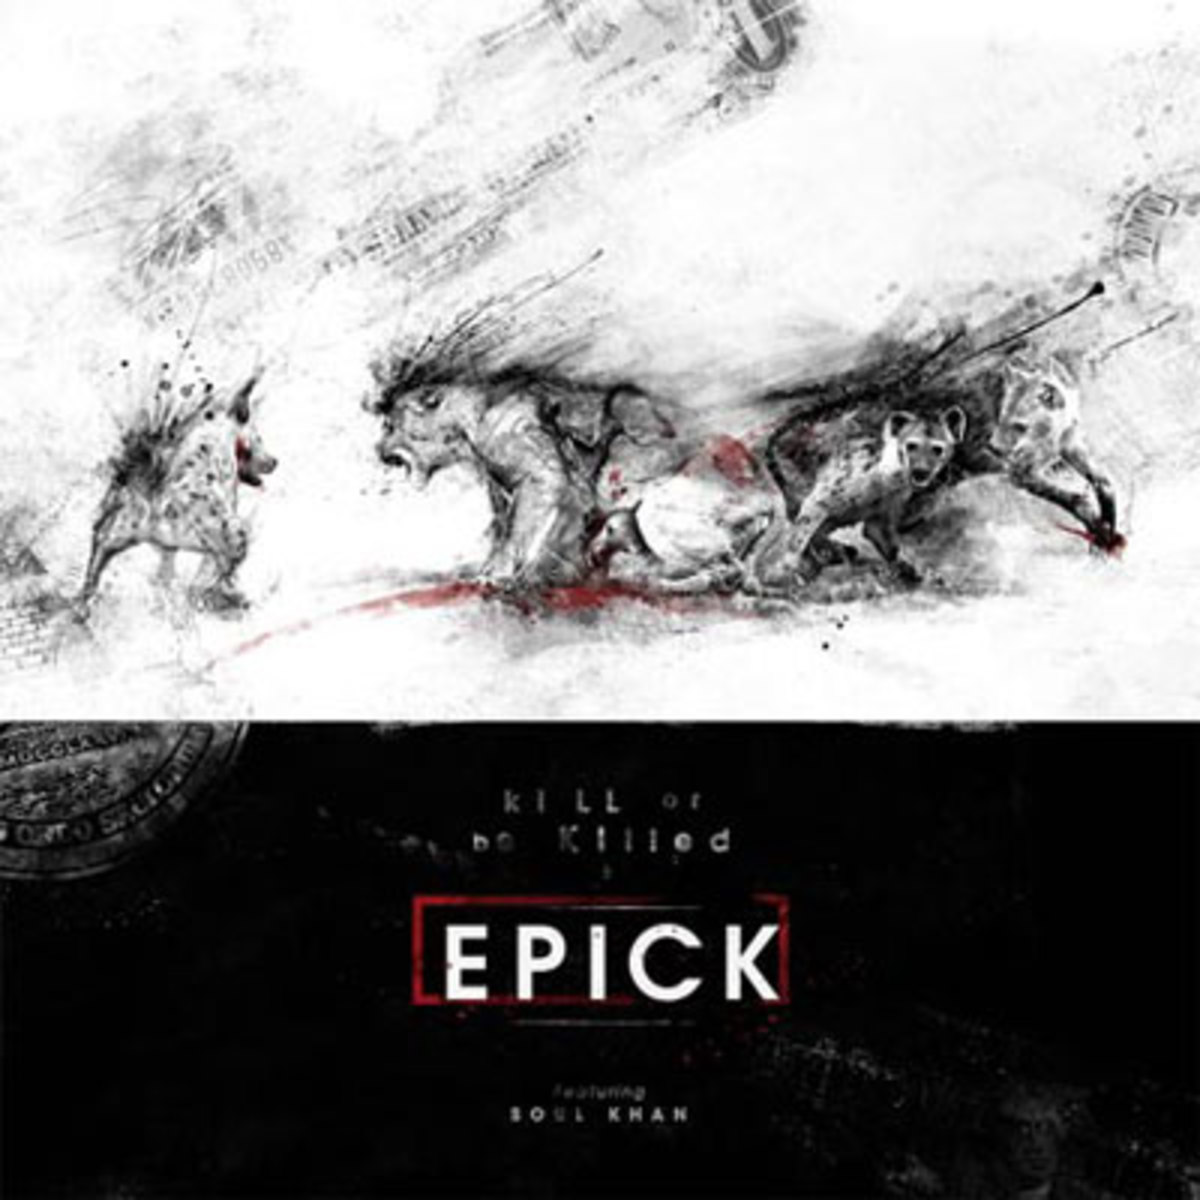 epick-killor.jpg